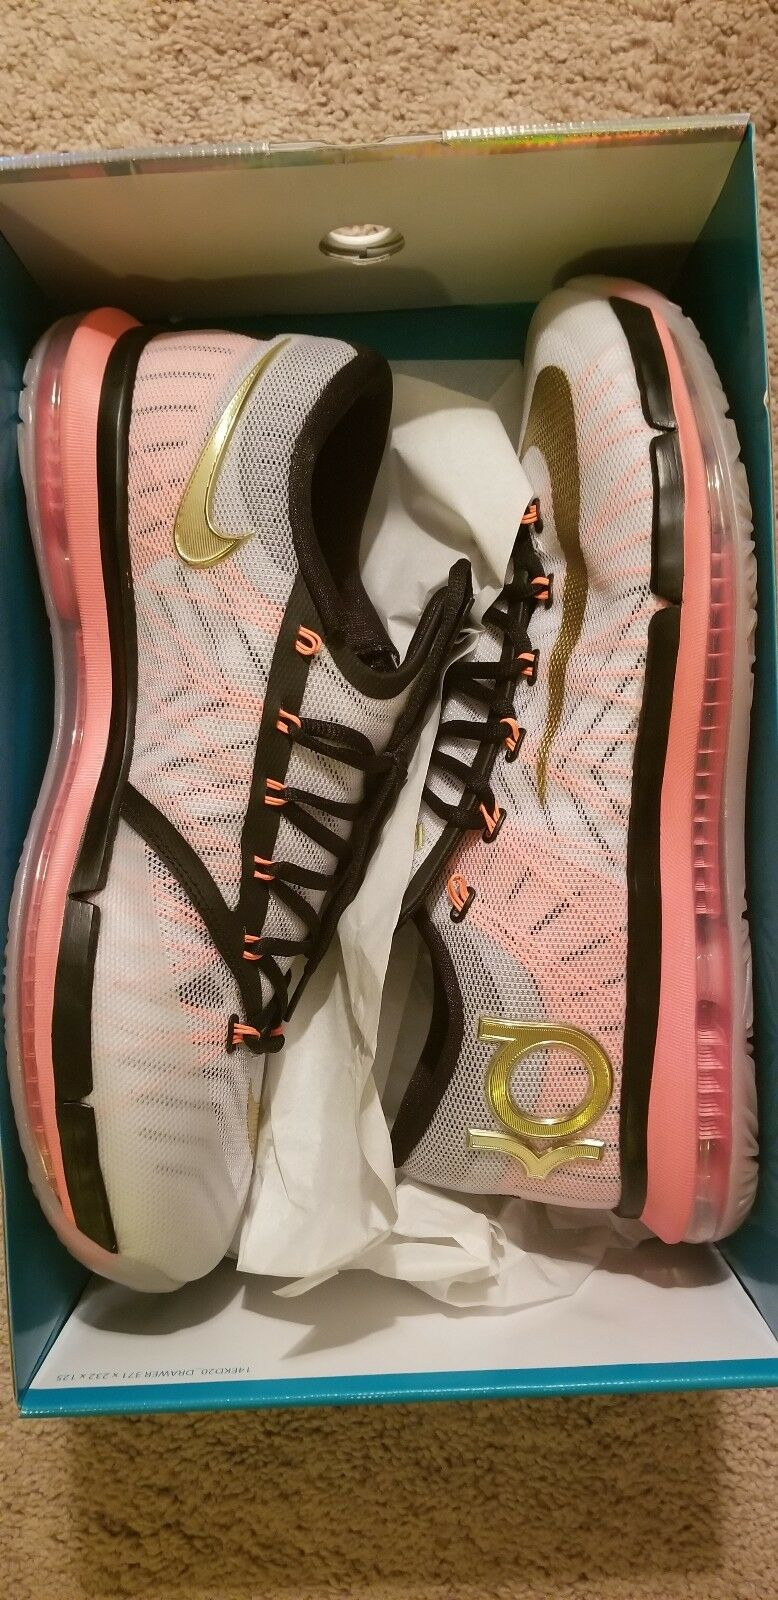 Nike KD VI Elite Gold Size 13 Good Condition